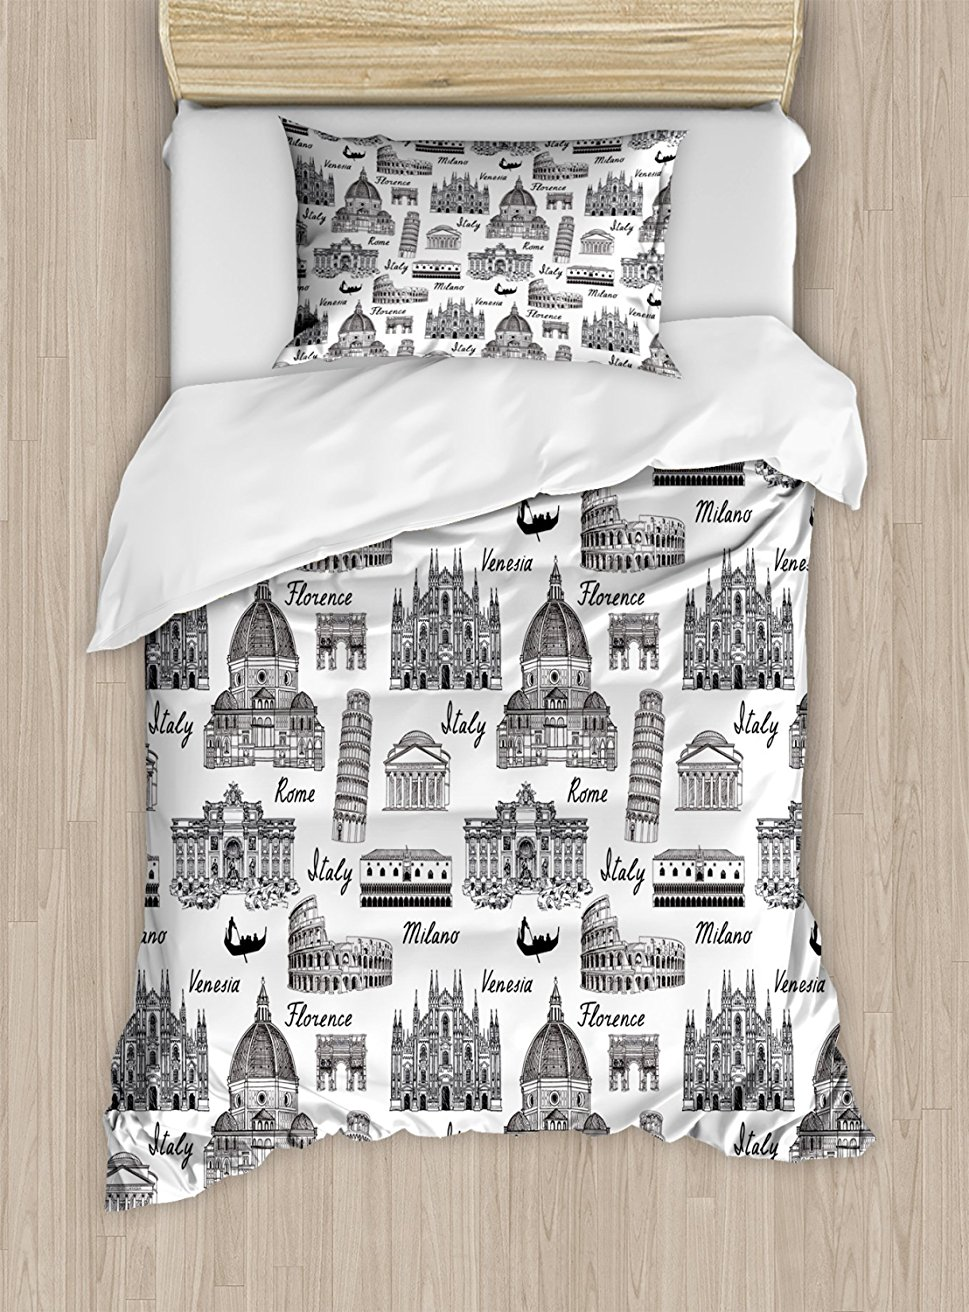 City Duvet Cover Set Monochrome Sketch Style Famous Places from Italy Rome Milano European Architecture Decorative Black White